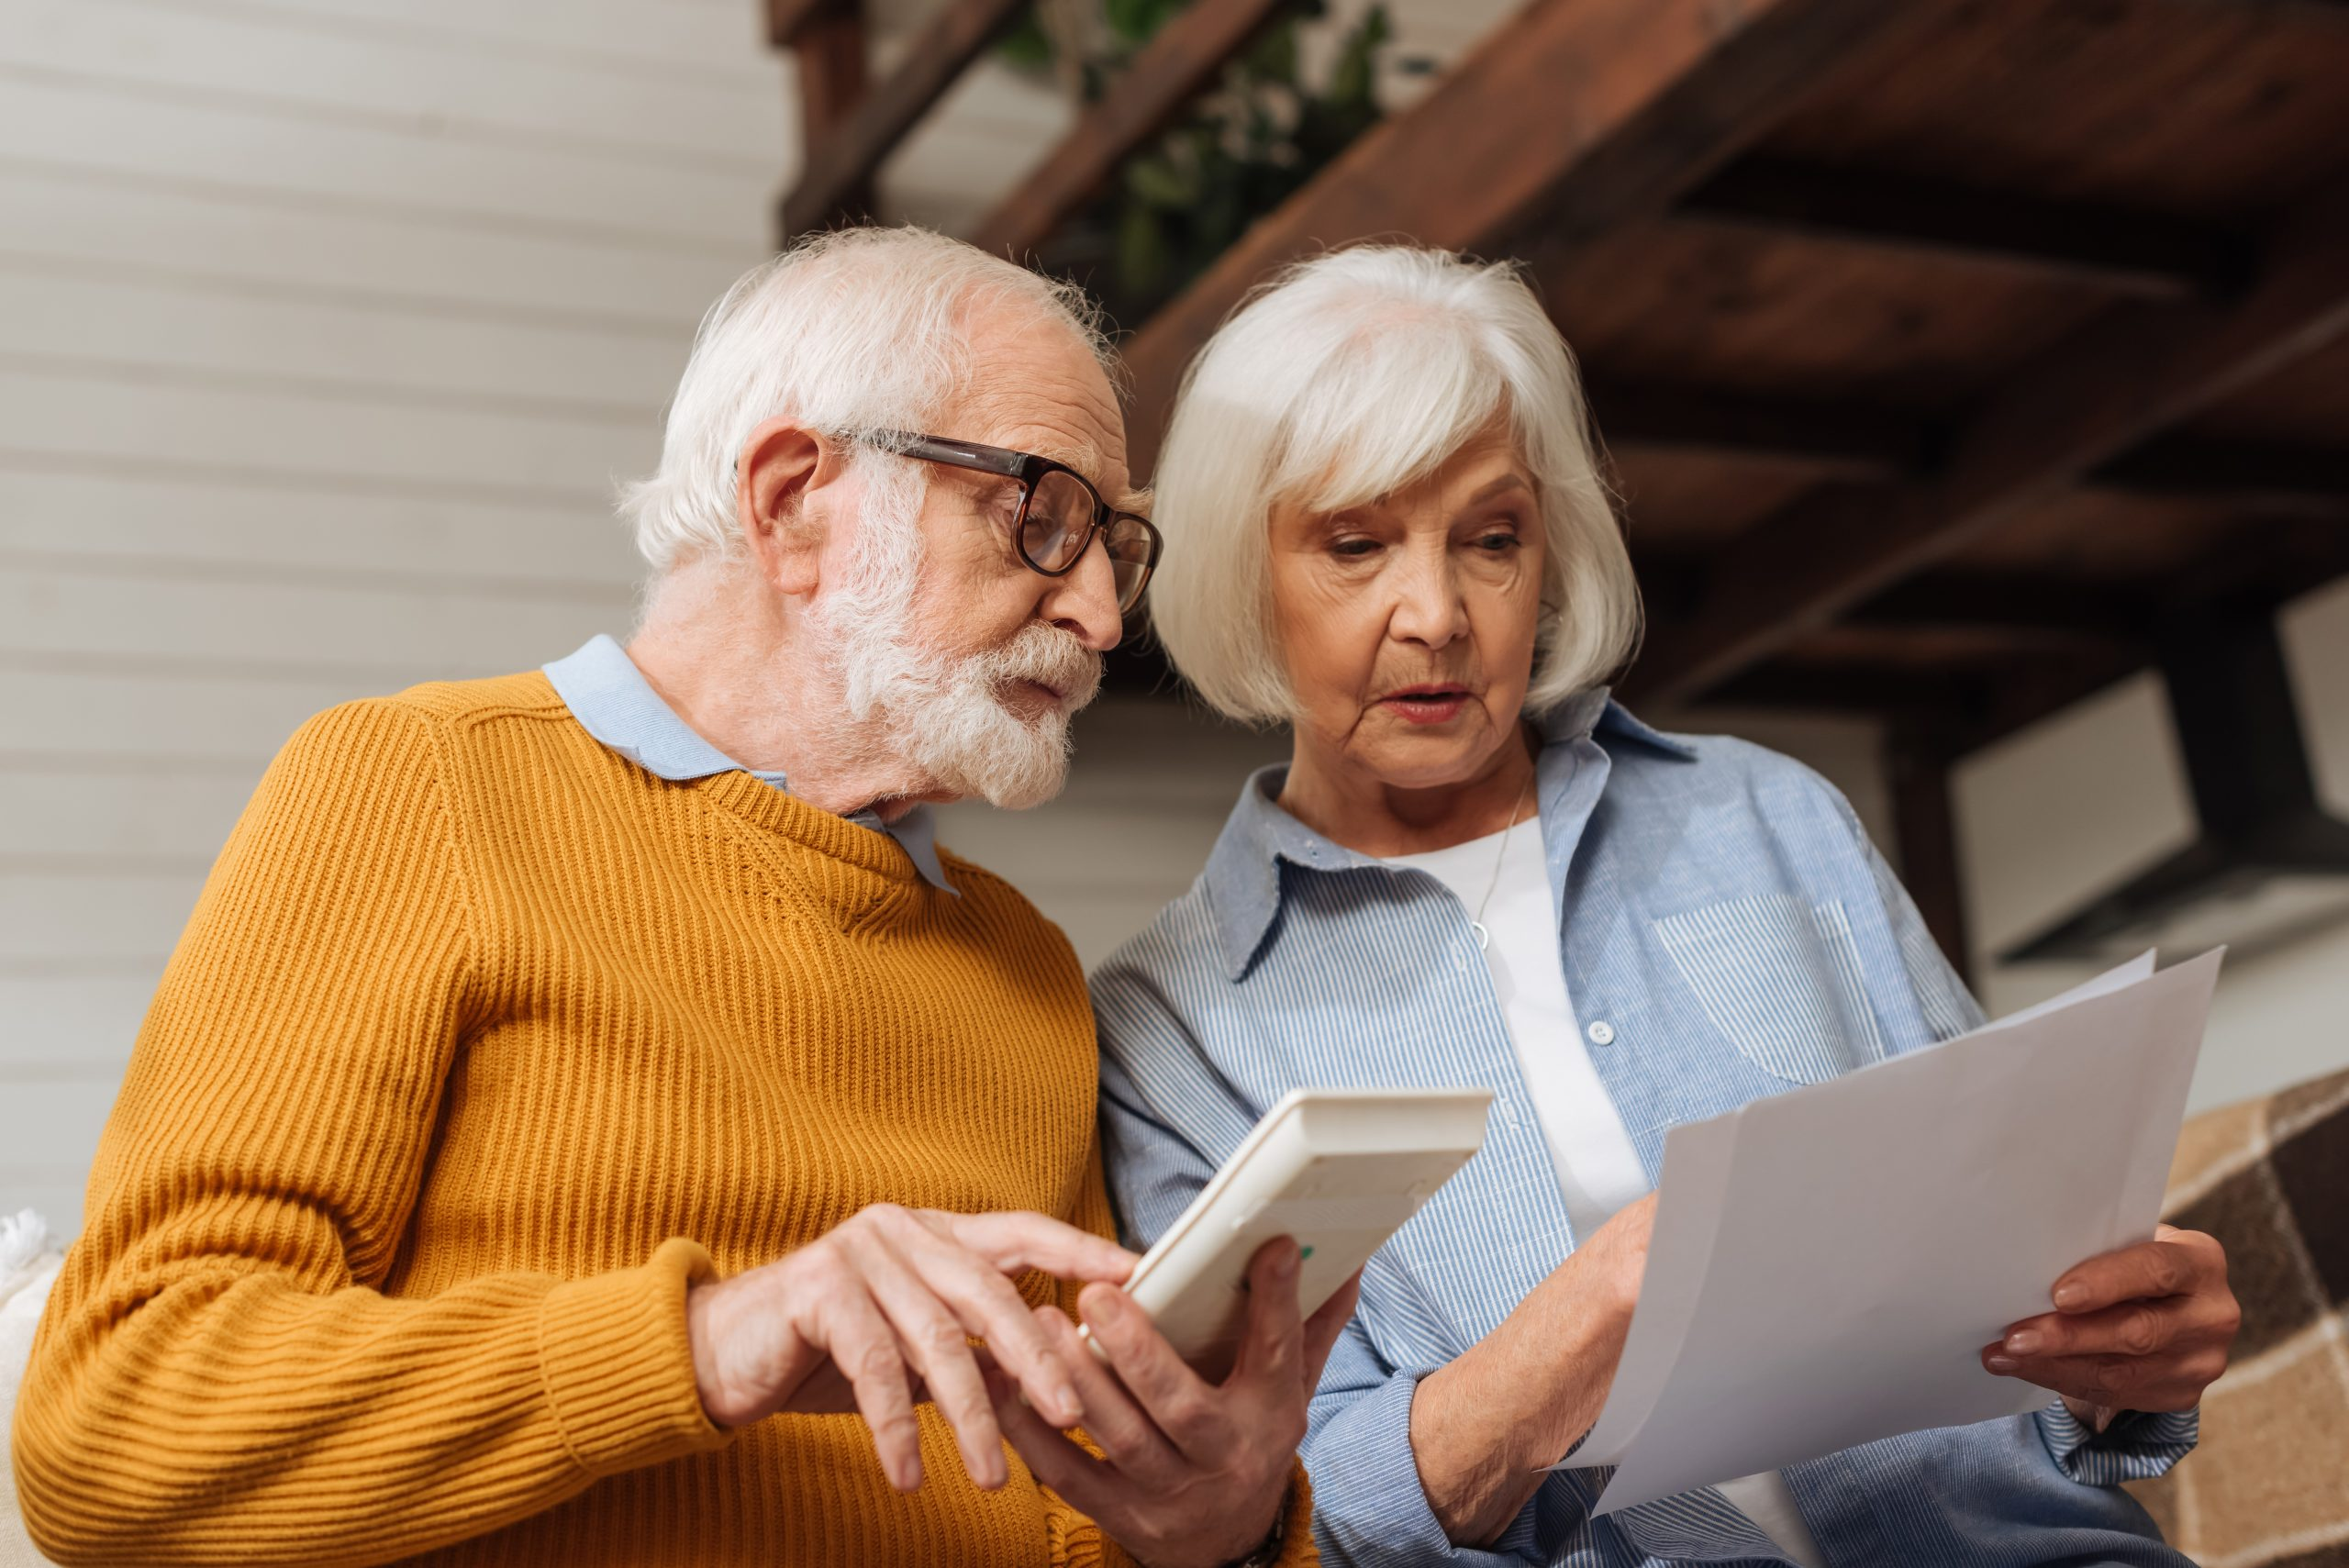 Tax Relief for Senior Citizens: Tax Credits & Deductions for Older Taxpayers